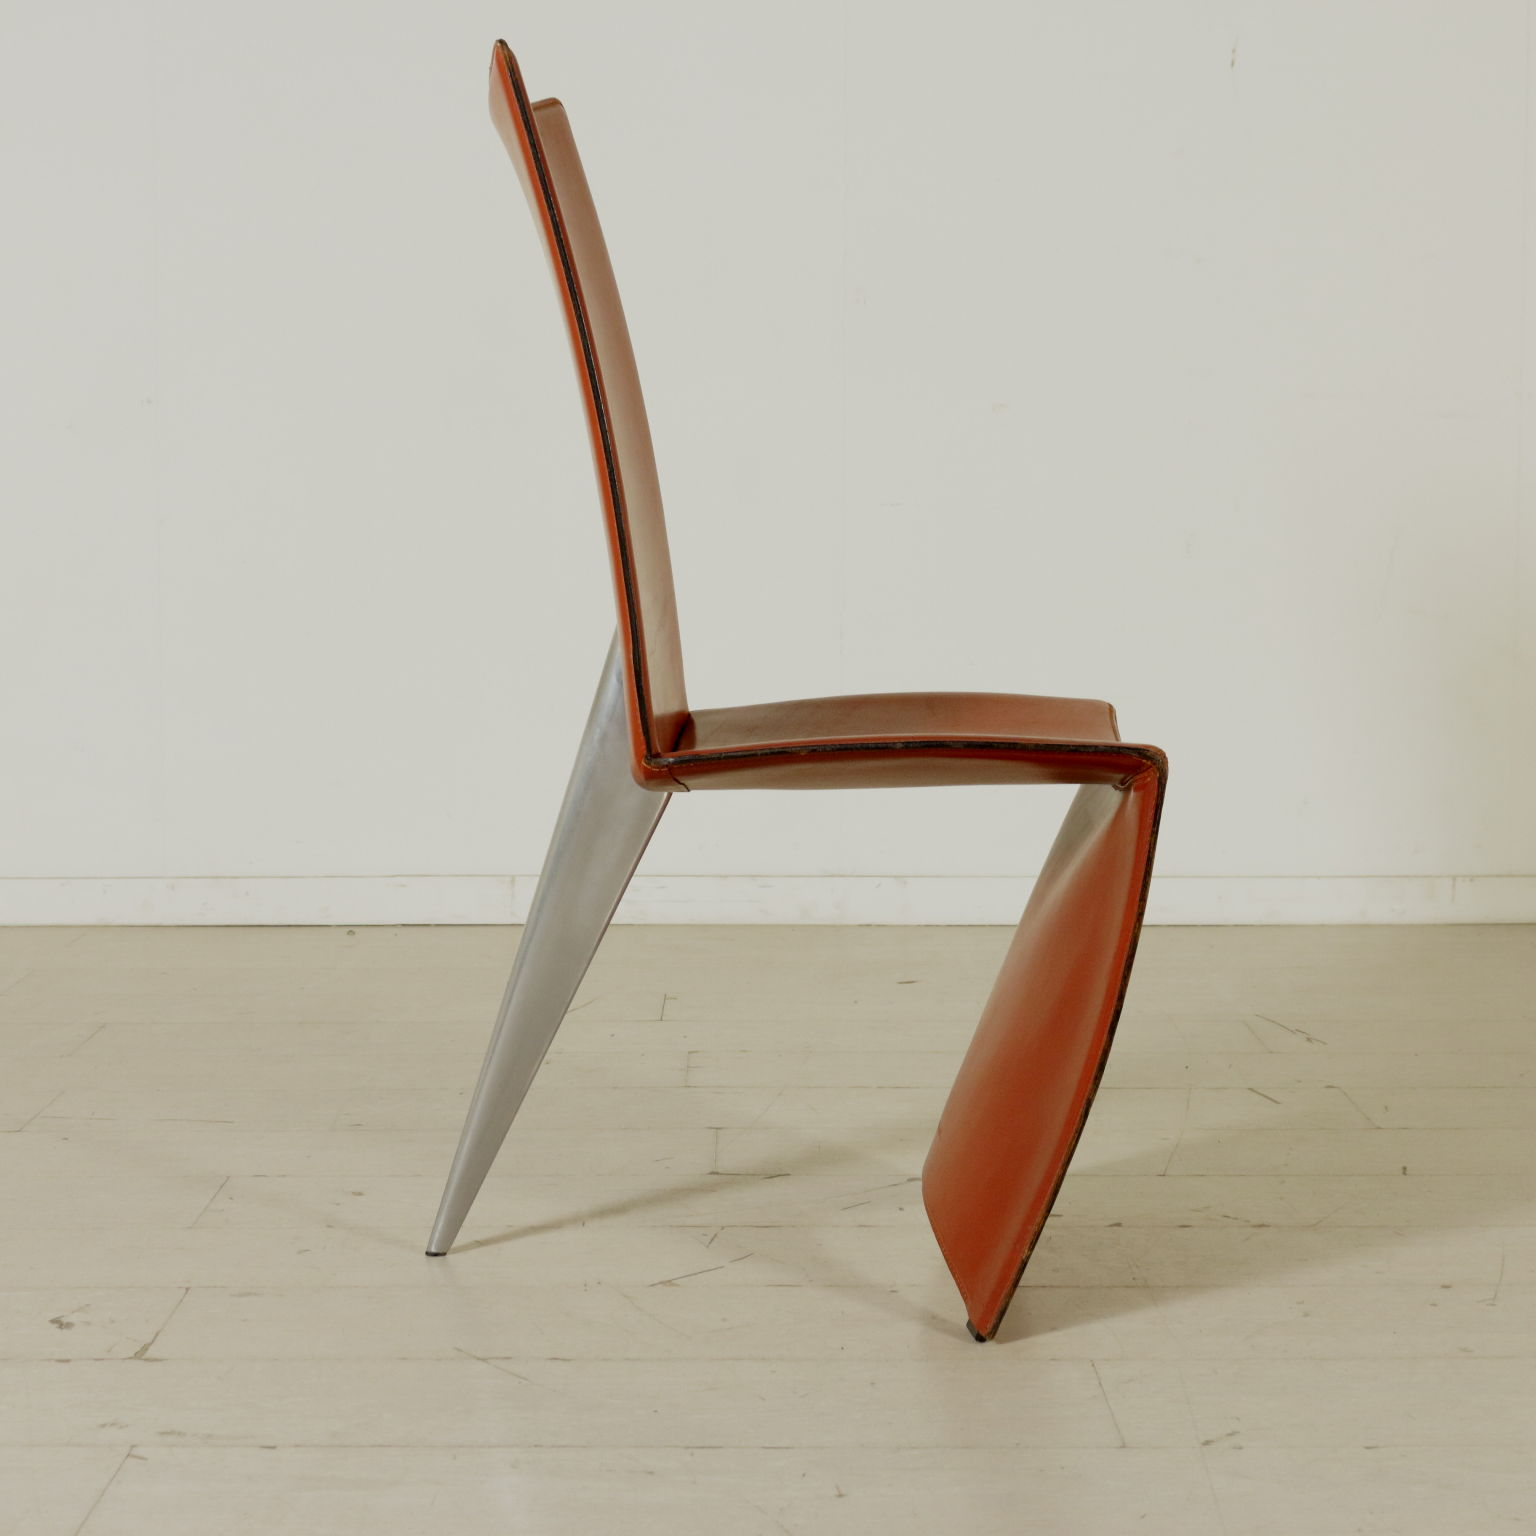 Chair Designed by Philippe Starck - Chairs - Modern design ...